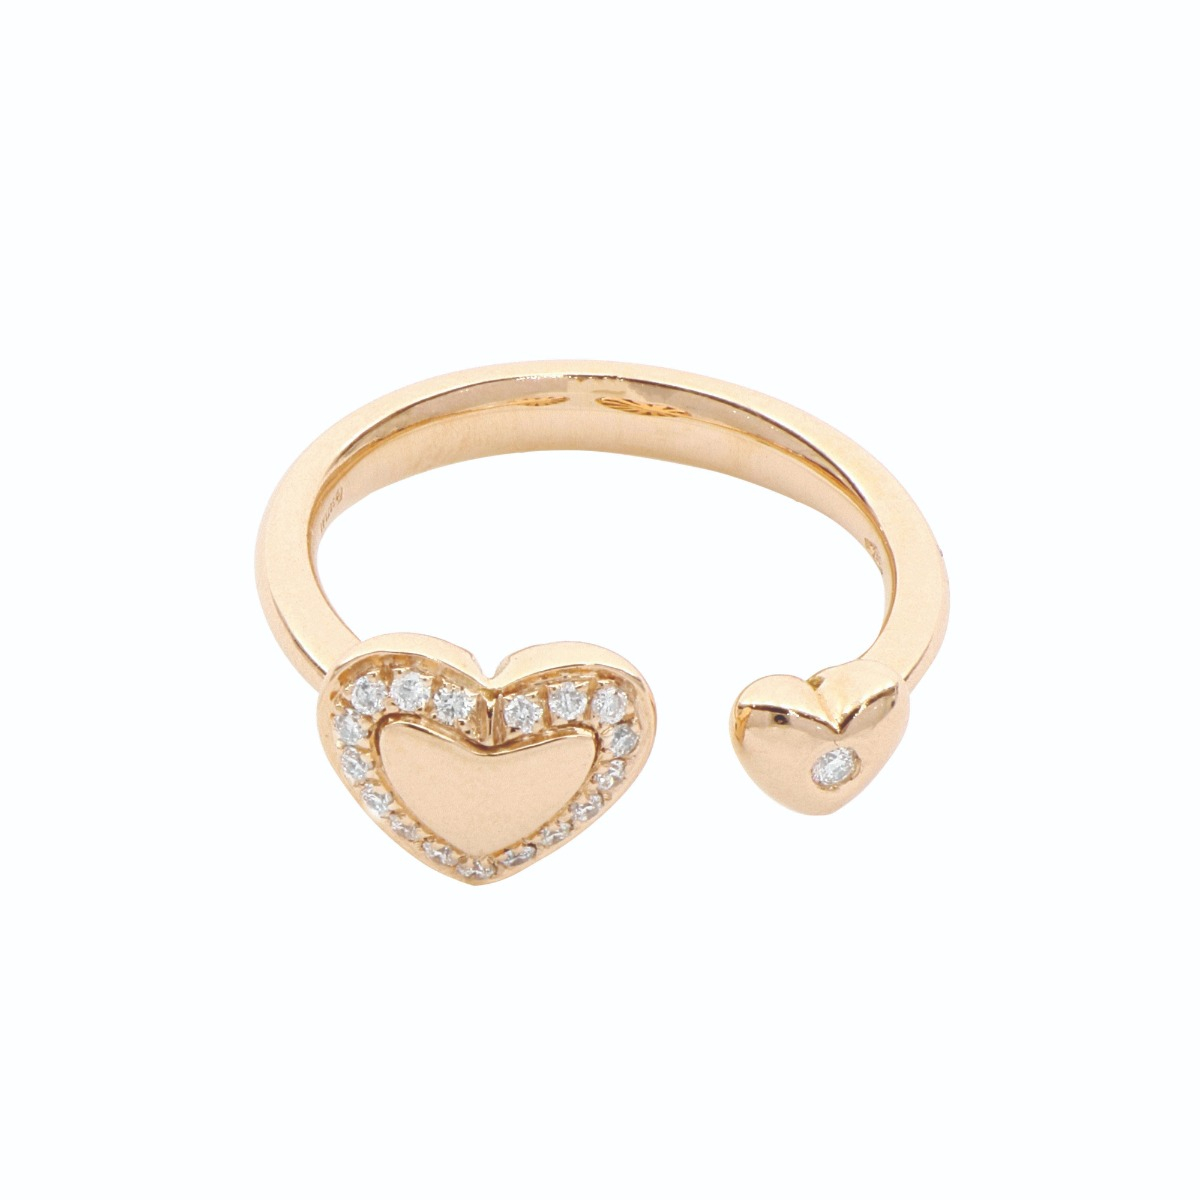 18 Kt Rose Gold Heart Ring with White Diamonds